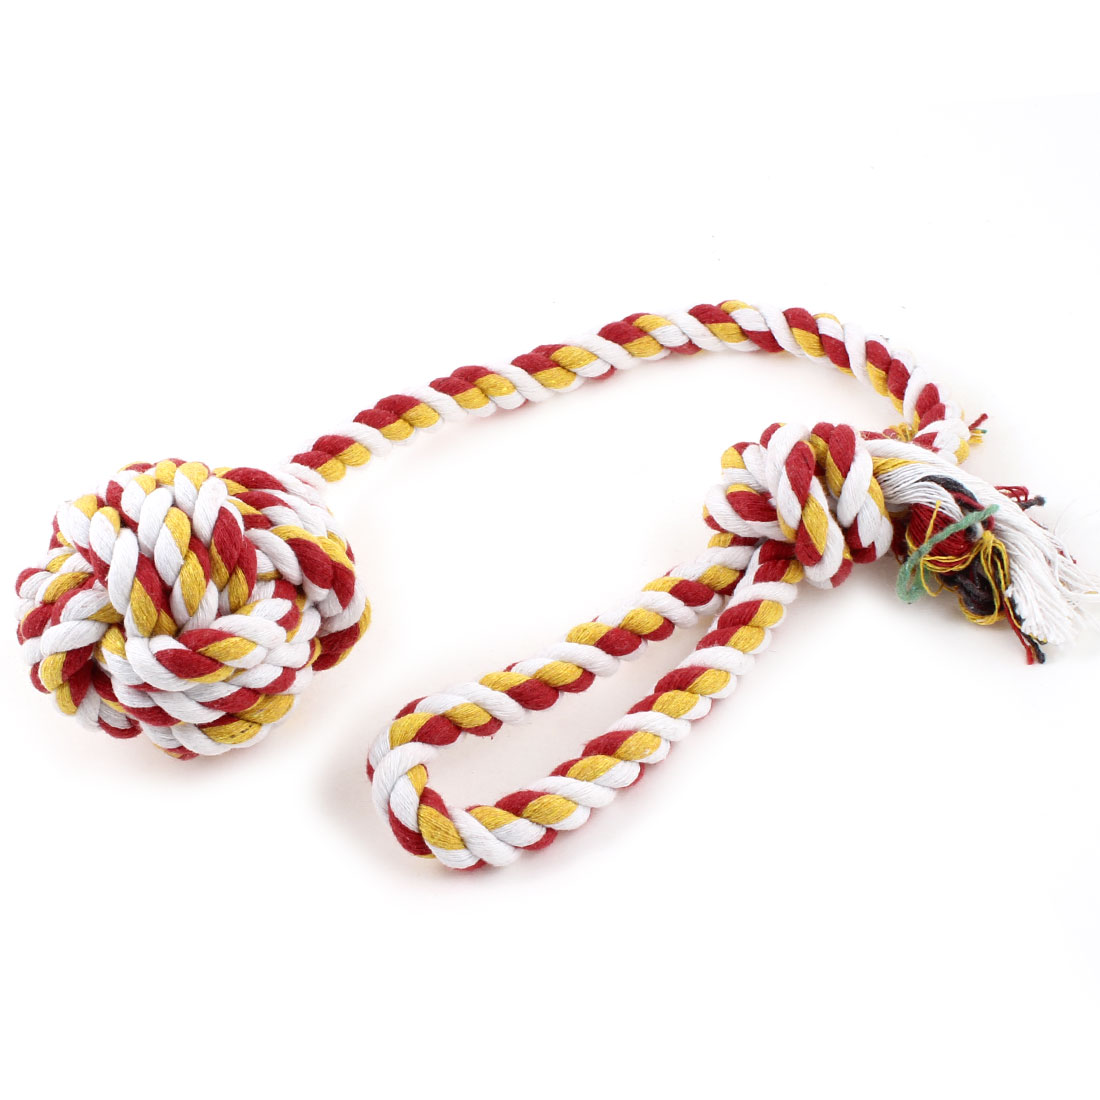 "Dog Pet Red Yellow White Cotton Braided Rope Ball Chew Knot Toy 19"" Long"